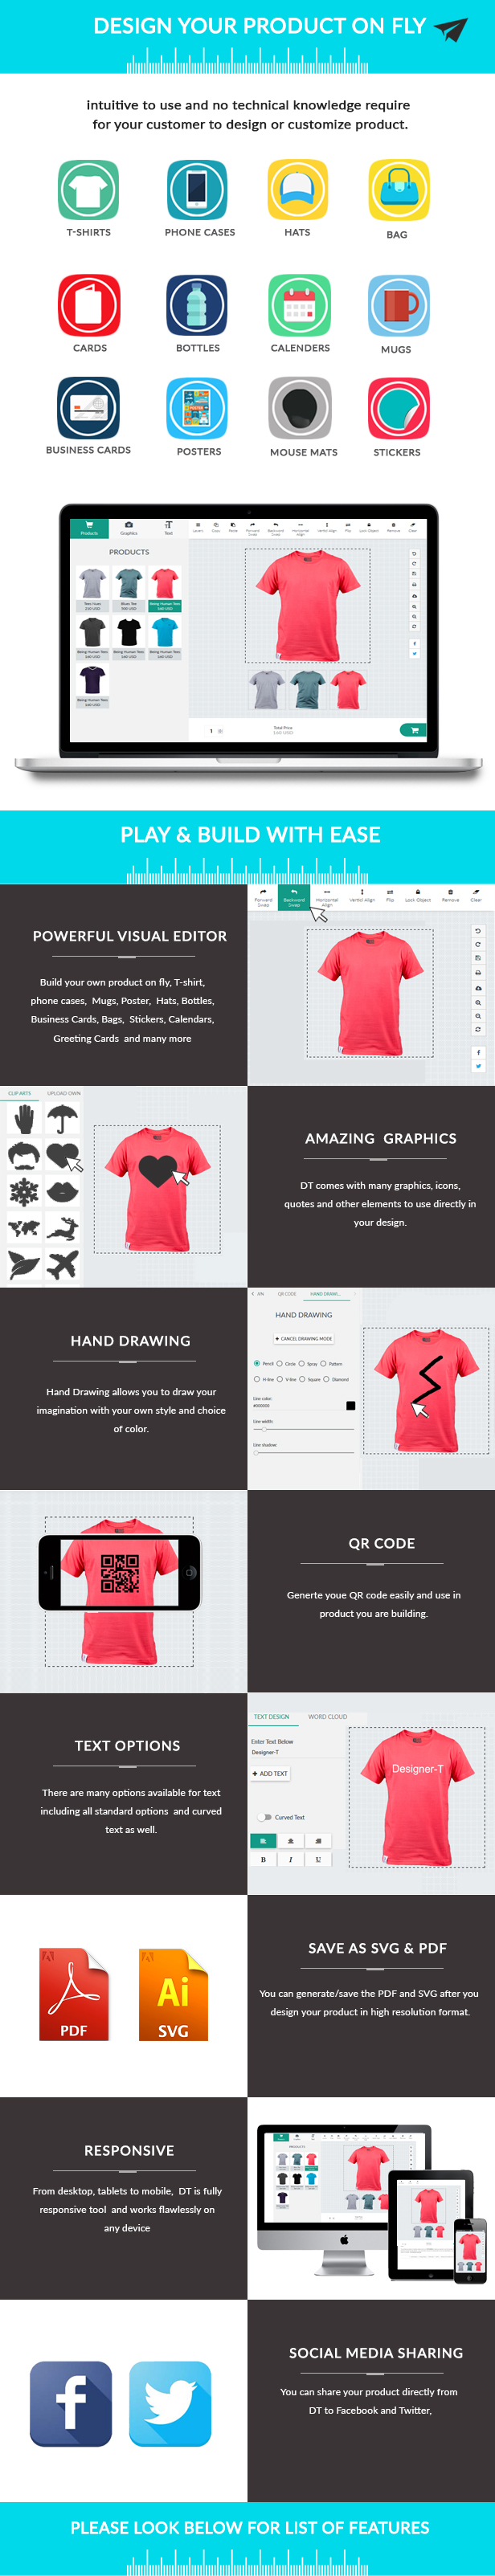 T shirt design jquery - Partial List Of Features